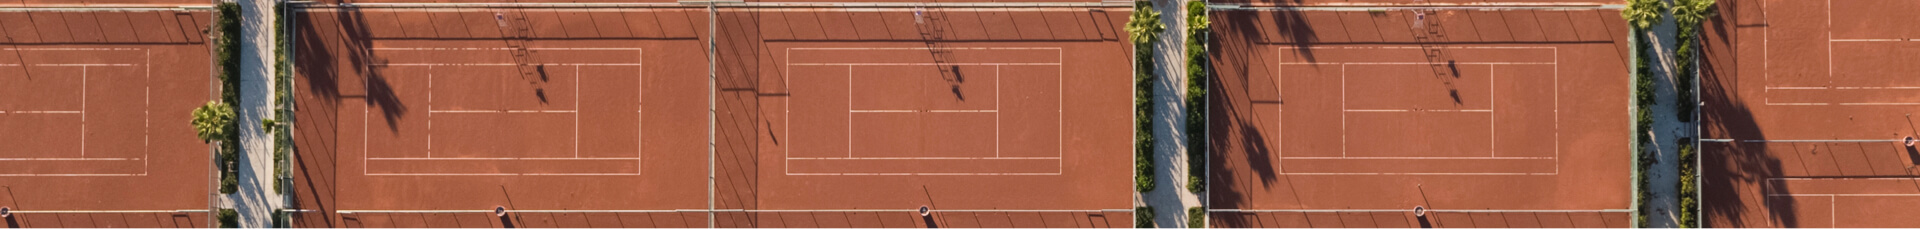 Ali Bey Resort Sorgun - Tennis Courts